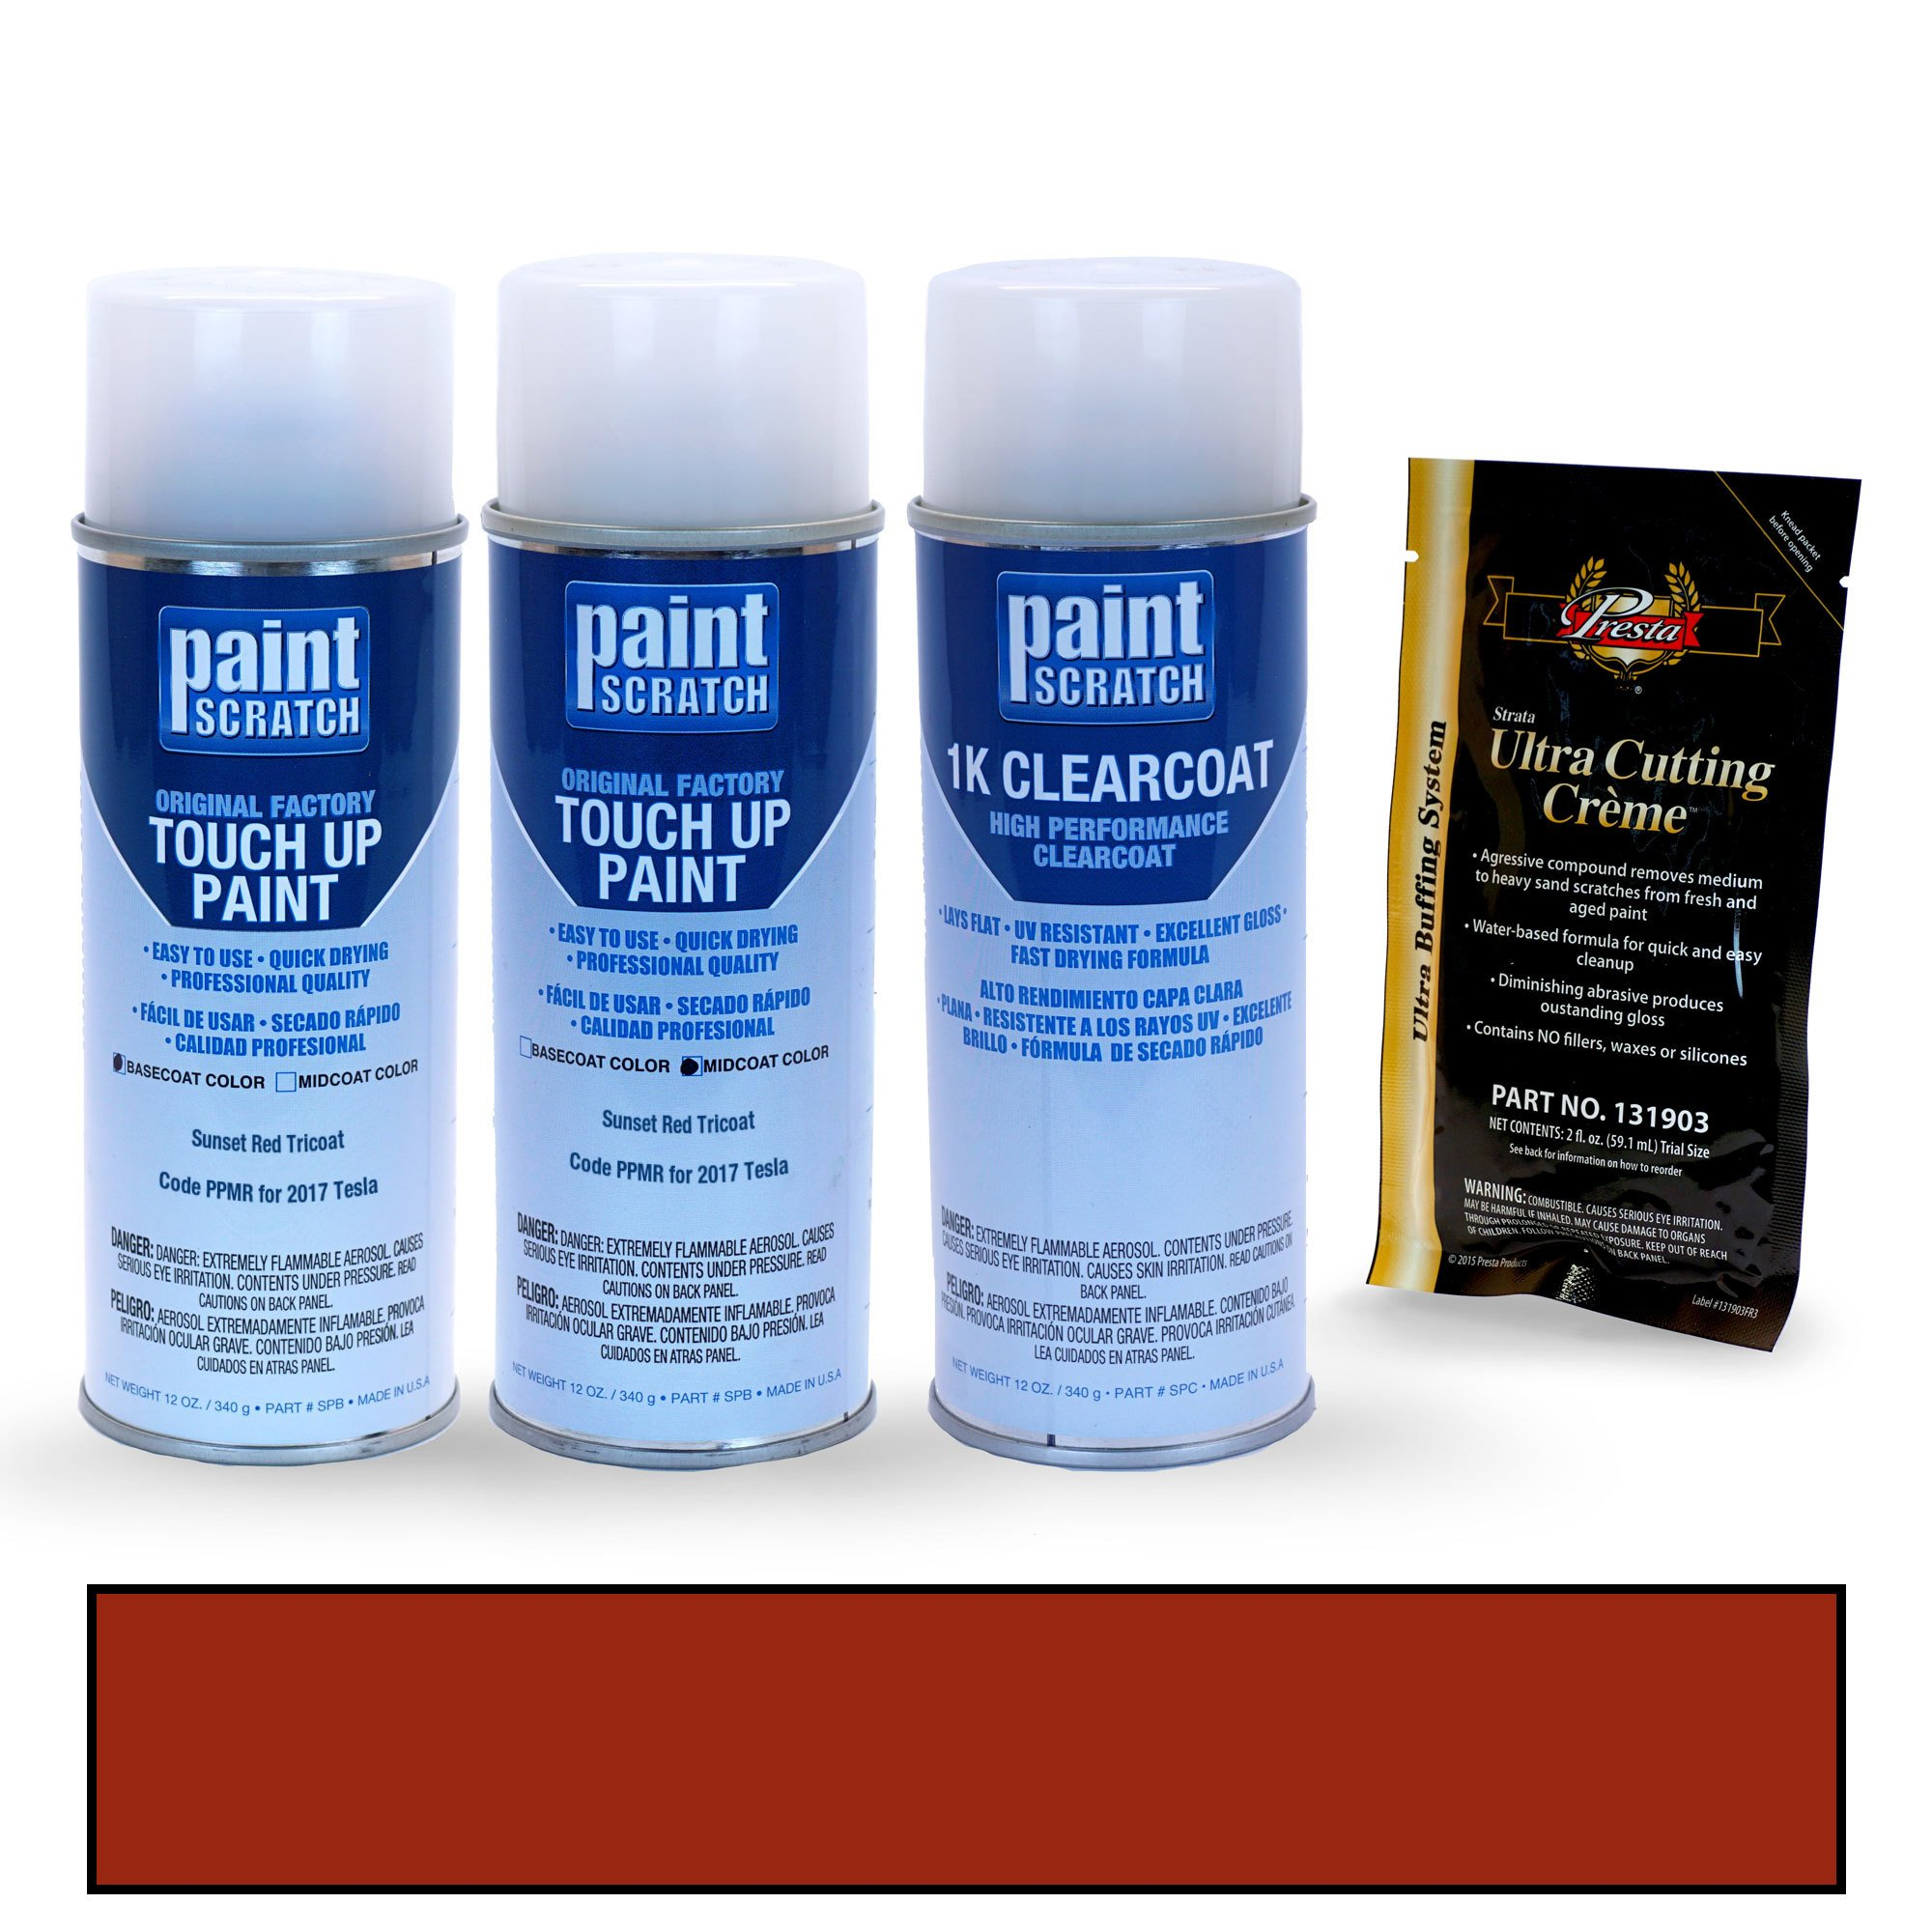 PAINTSCRATCH Sunset Red Tricoat PPMR for 2017 Tesla All Models - Touch Up Paint Spray Can Kit - Original Factory OEM Automotive Paint - Color Match Guaranteed